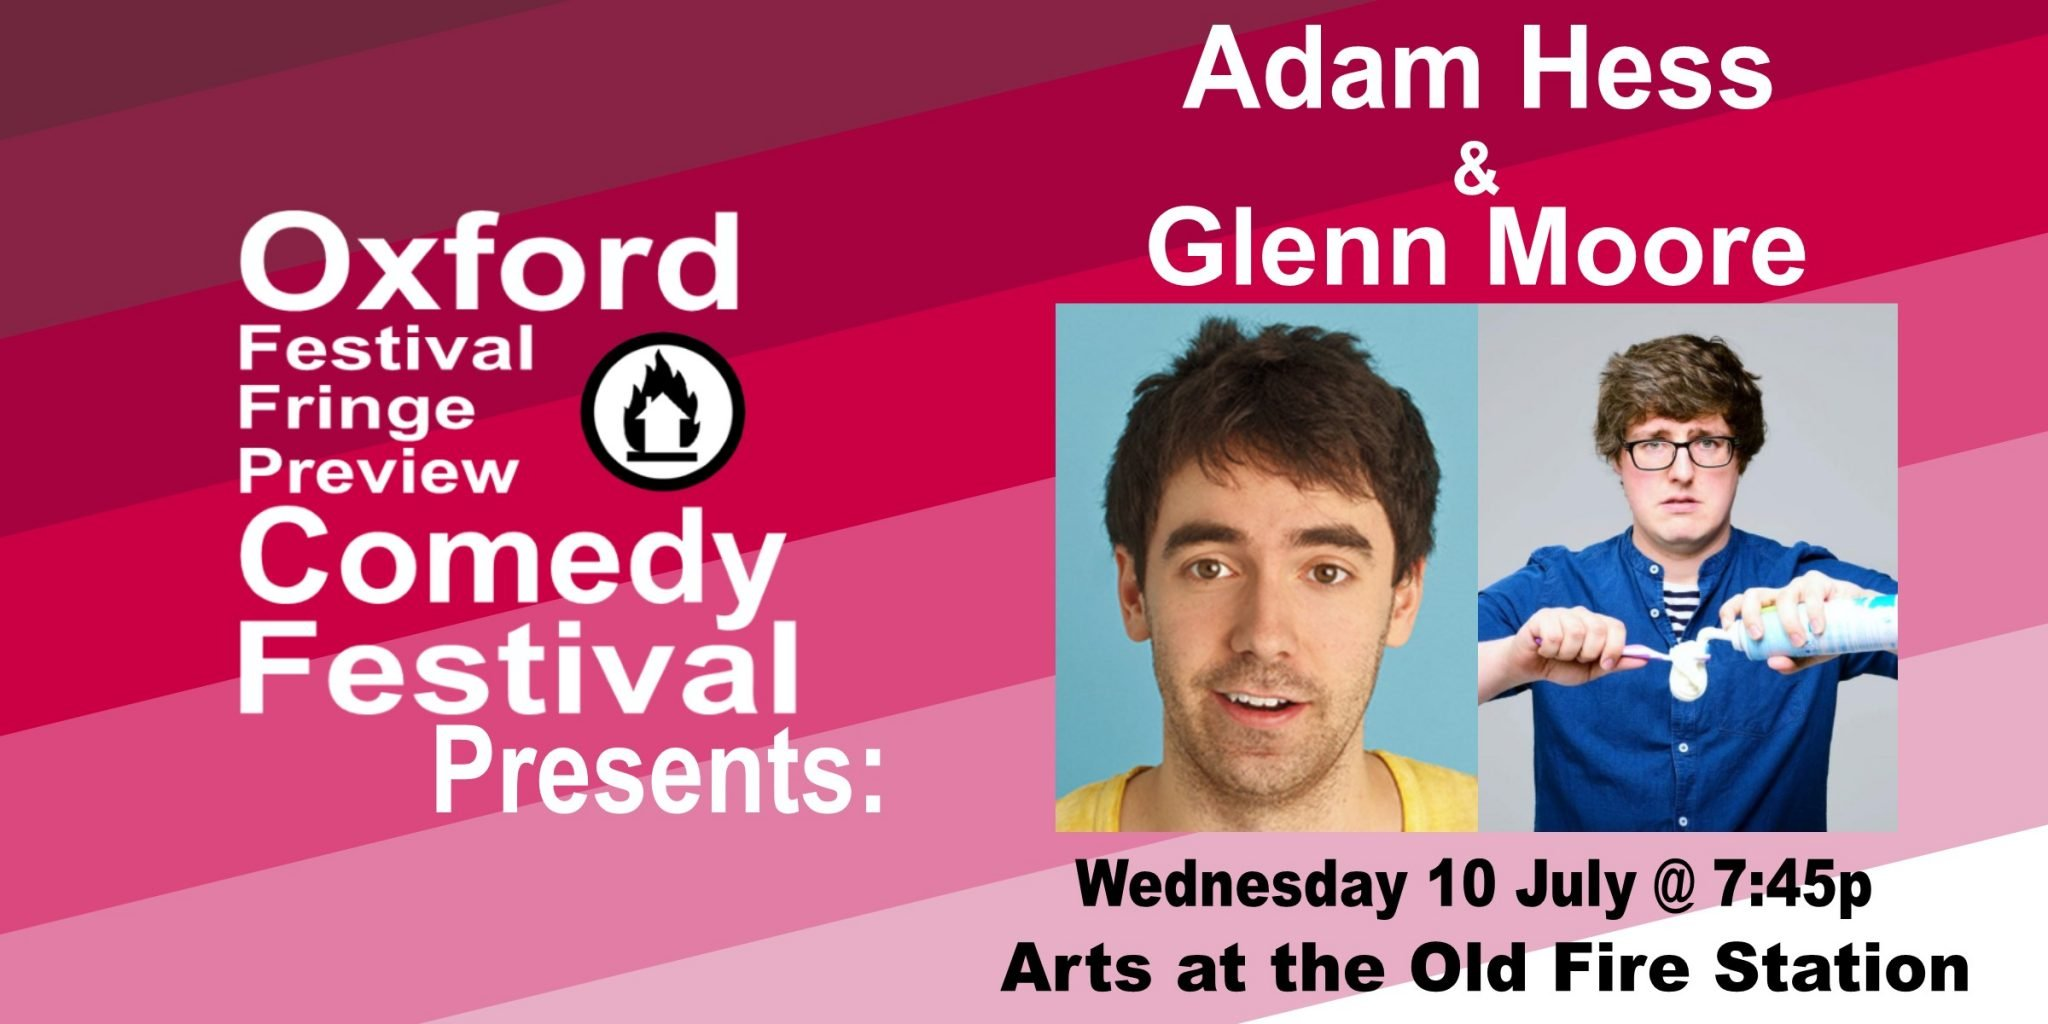 Oxford Comedy Festival 2019 presents Adam Hess and Glenn Moore